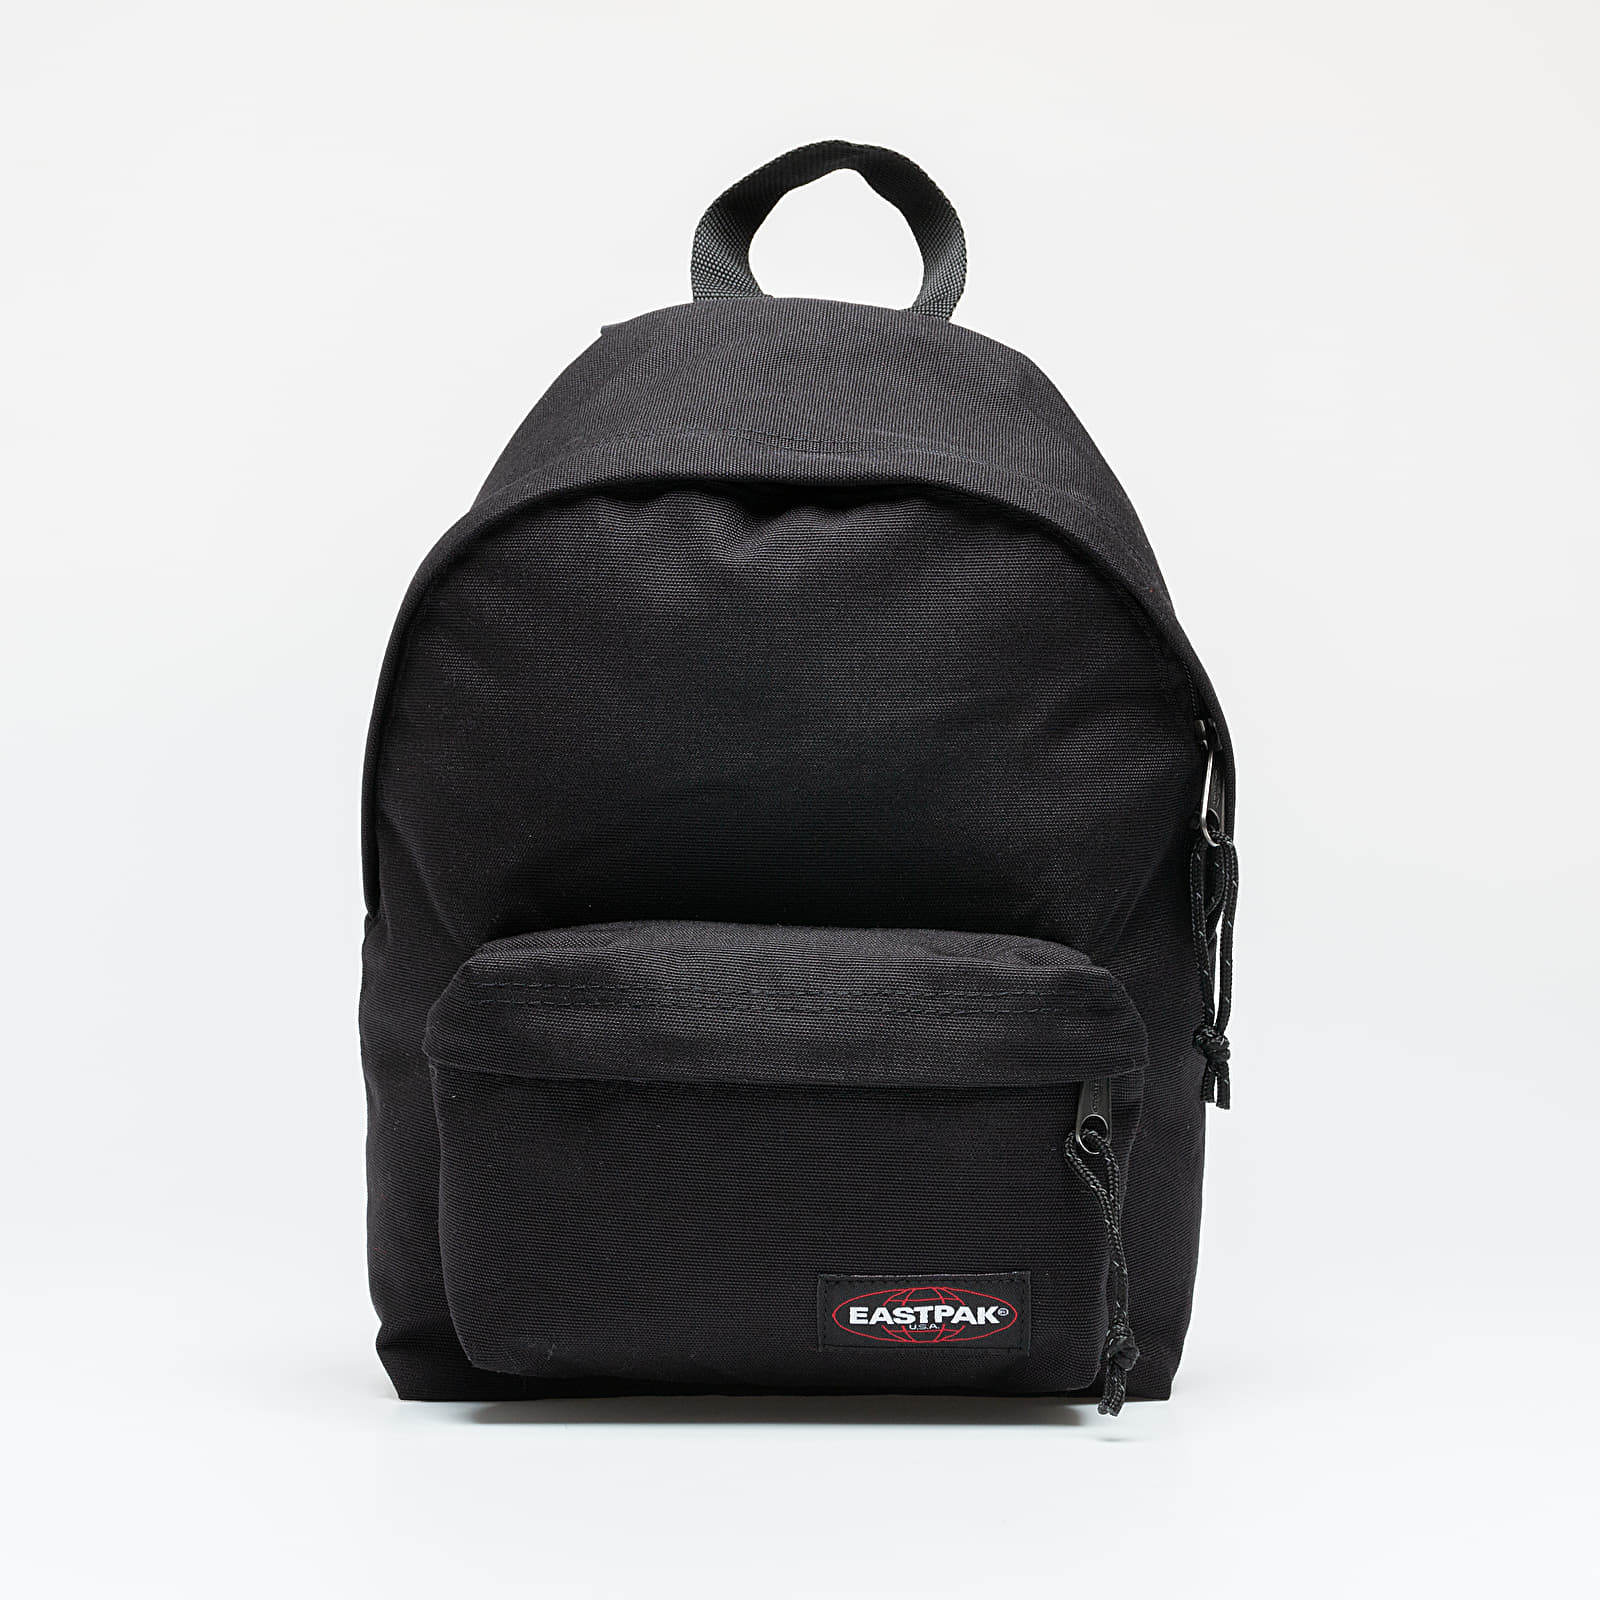 Batohy EASTPAK Orbit Backpack Black